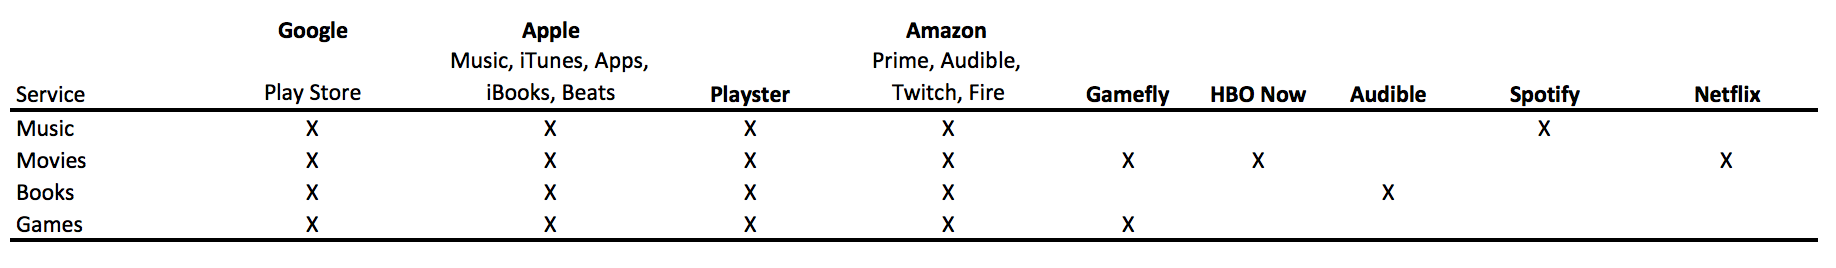 Comparing Entertainment Streaming Services - Humanizing Tech